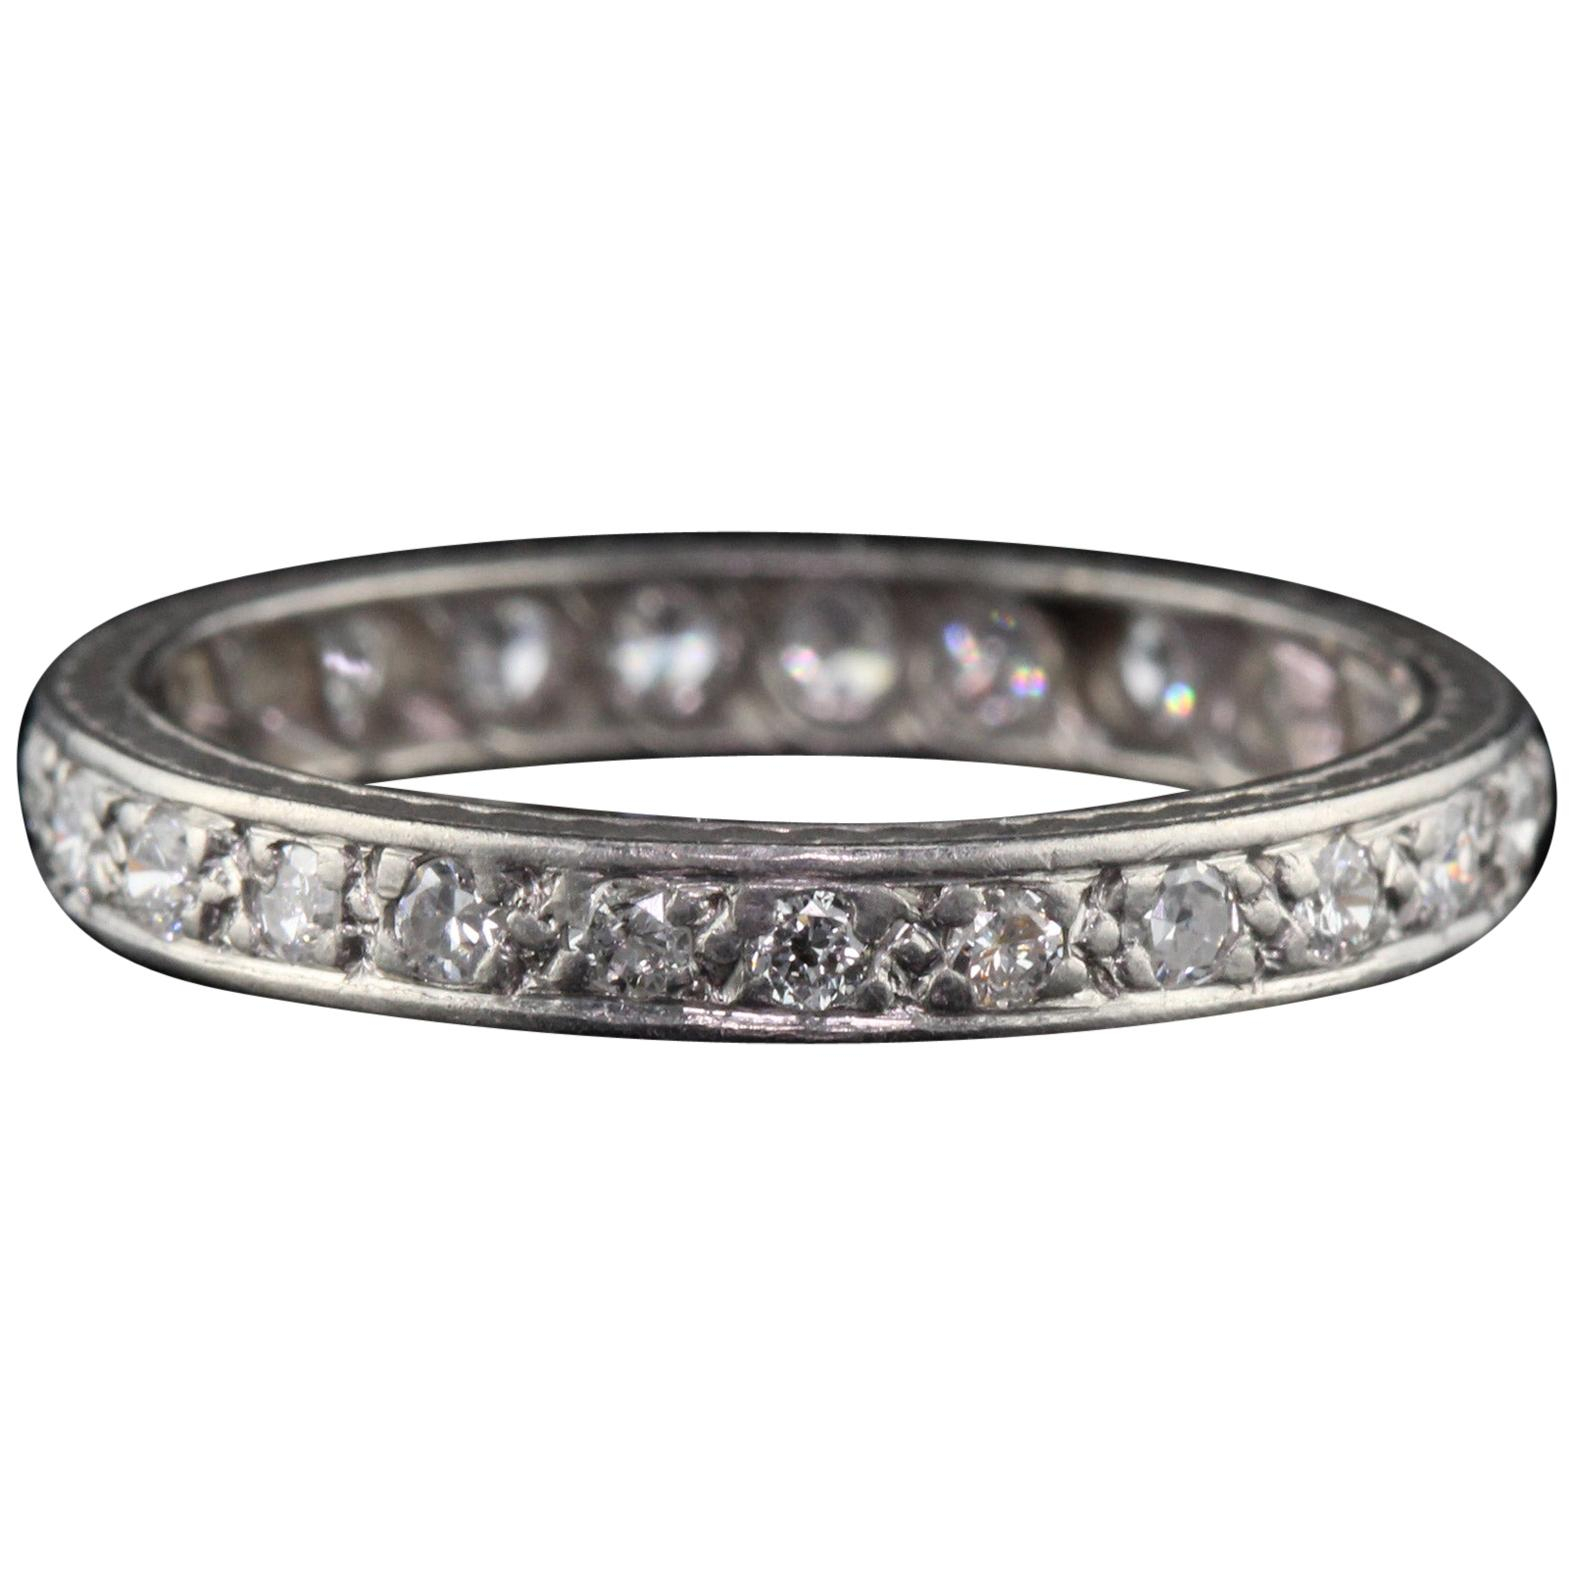 Art Deco Eternity Bands – 109 For Sale On 1stdibs For Most Popular Diamond Eternity Anniversary Vintage Style Bands In White Gold (View 17 of 25)